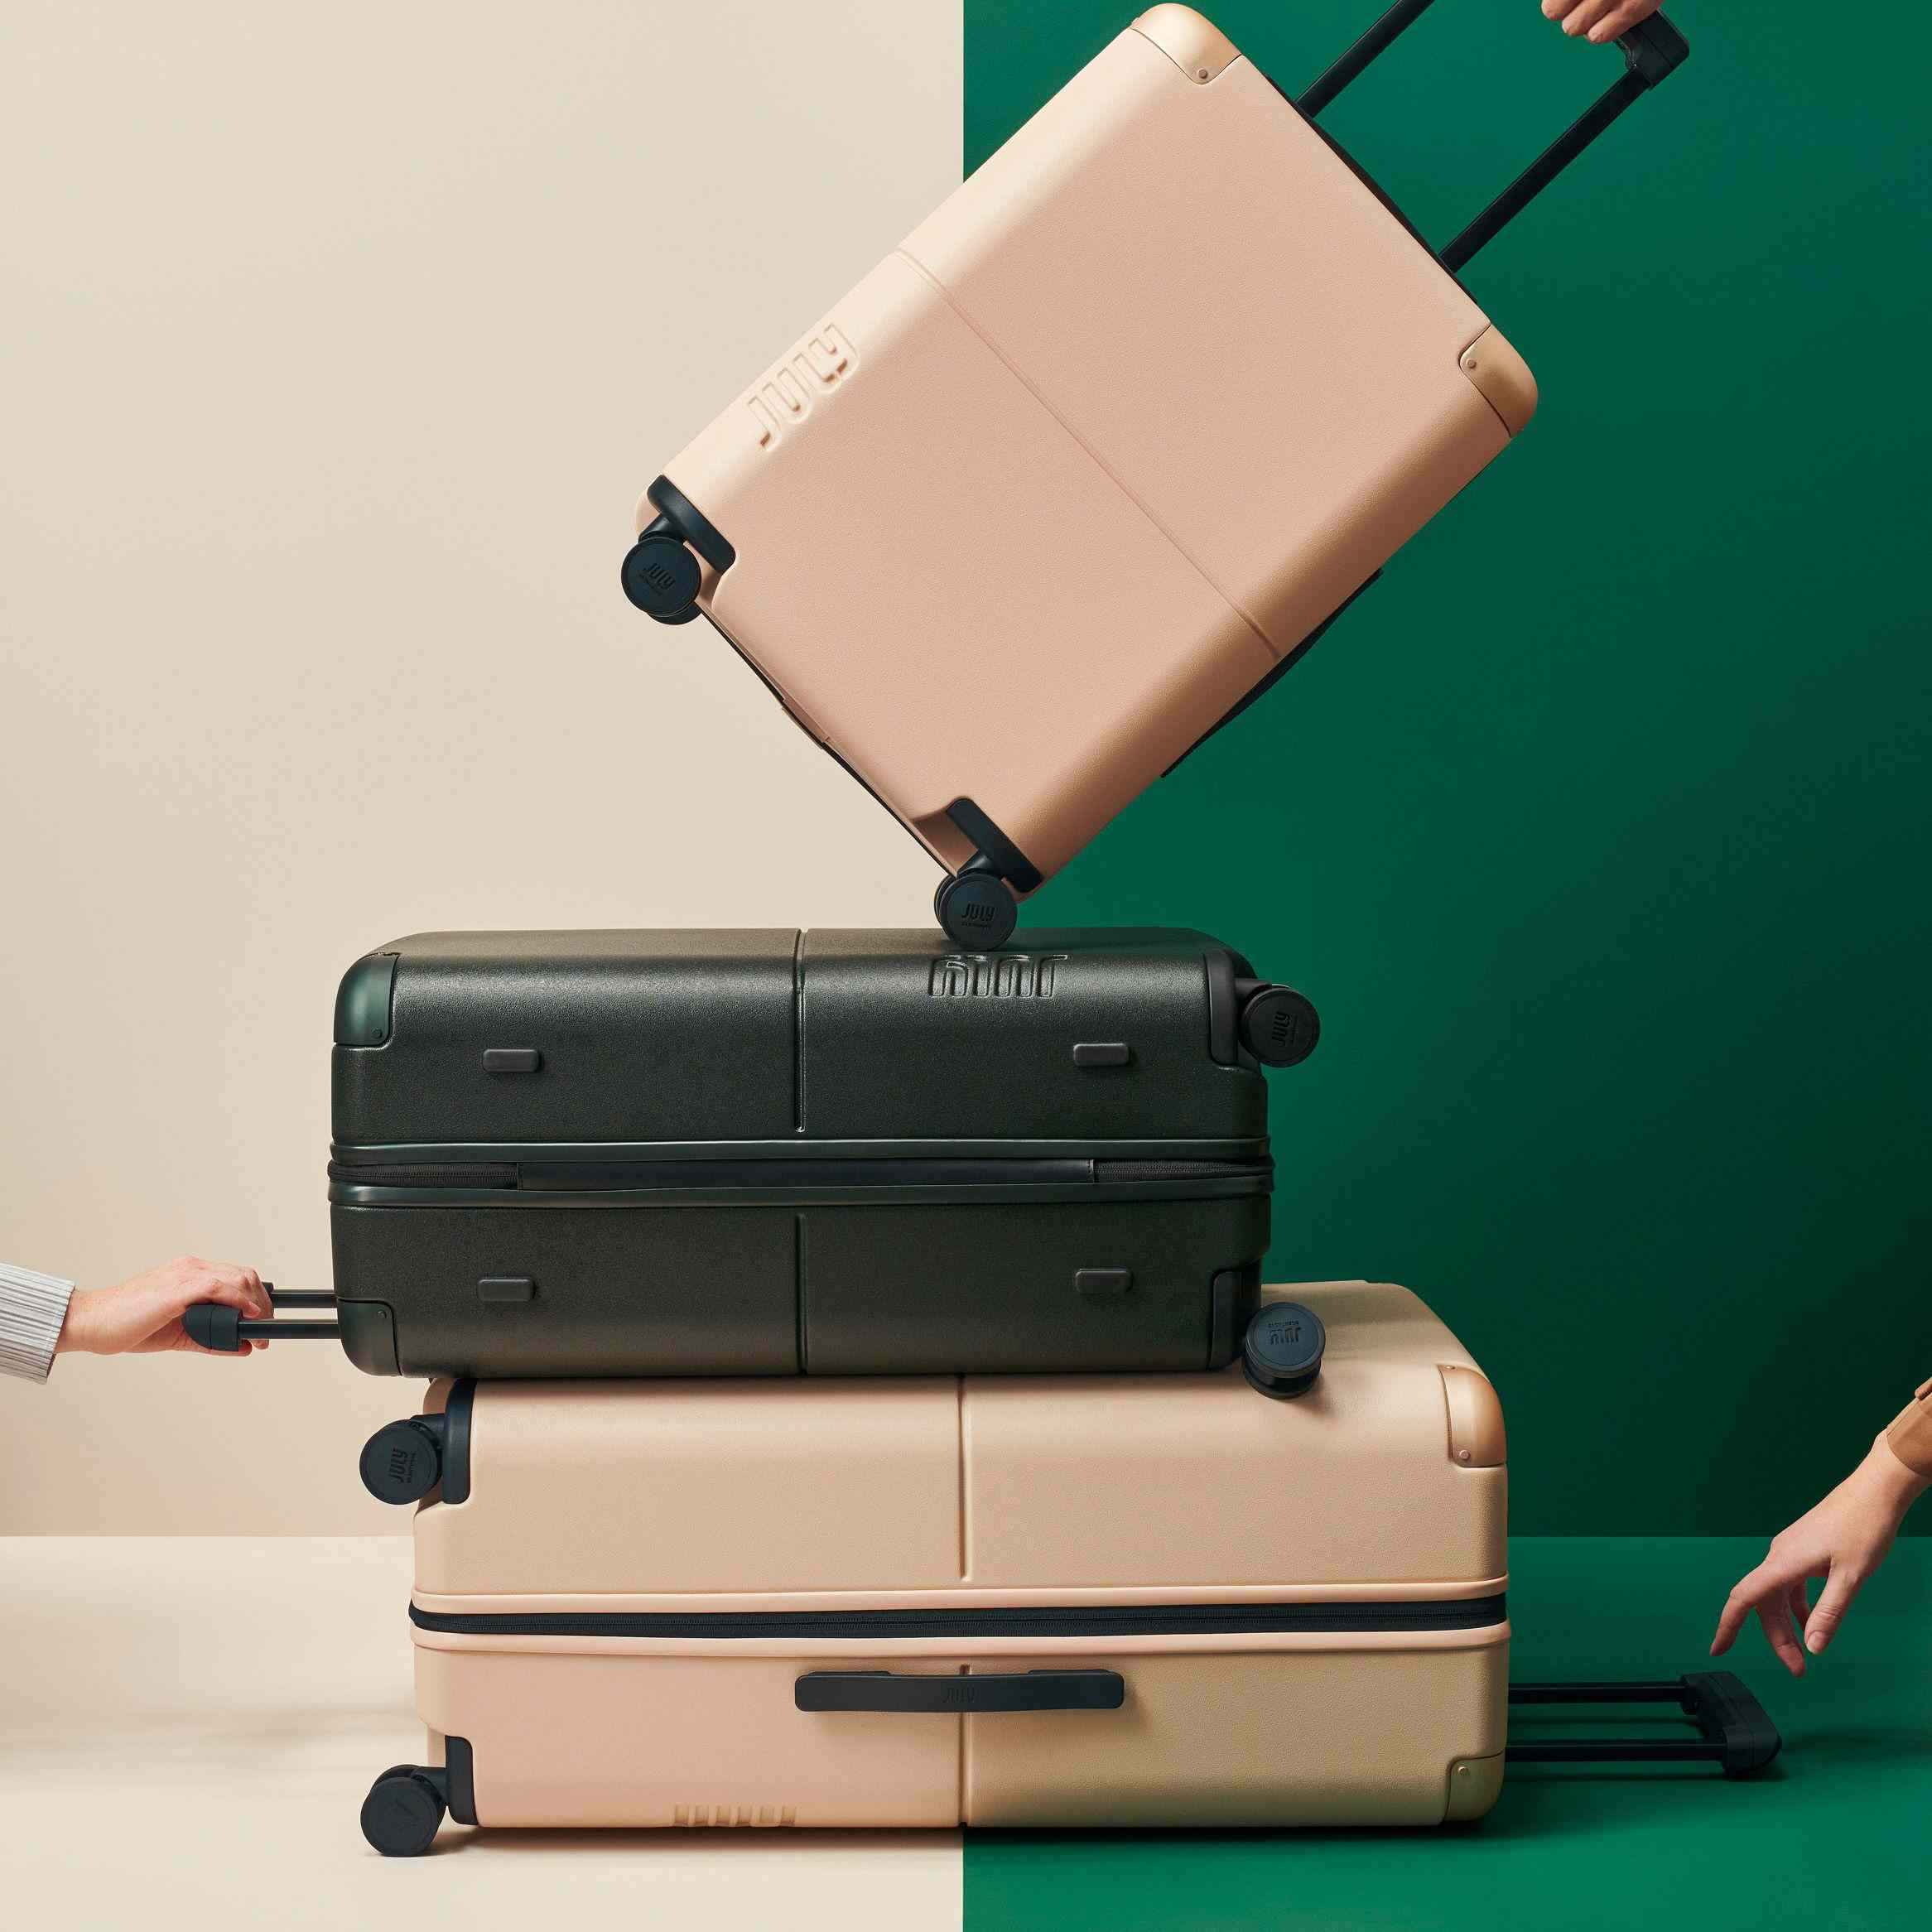 July luggage on green and beige background.